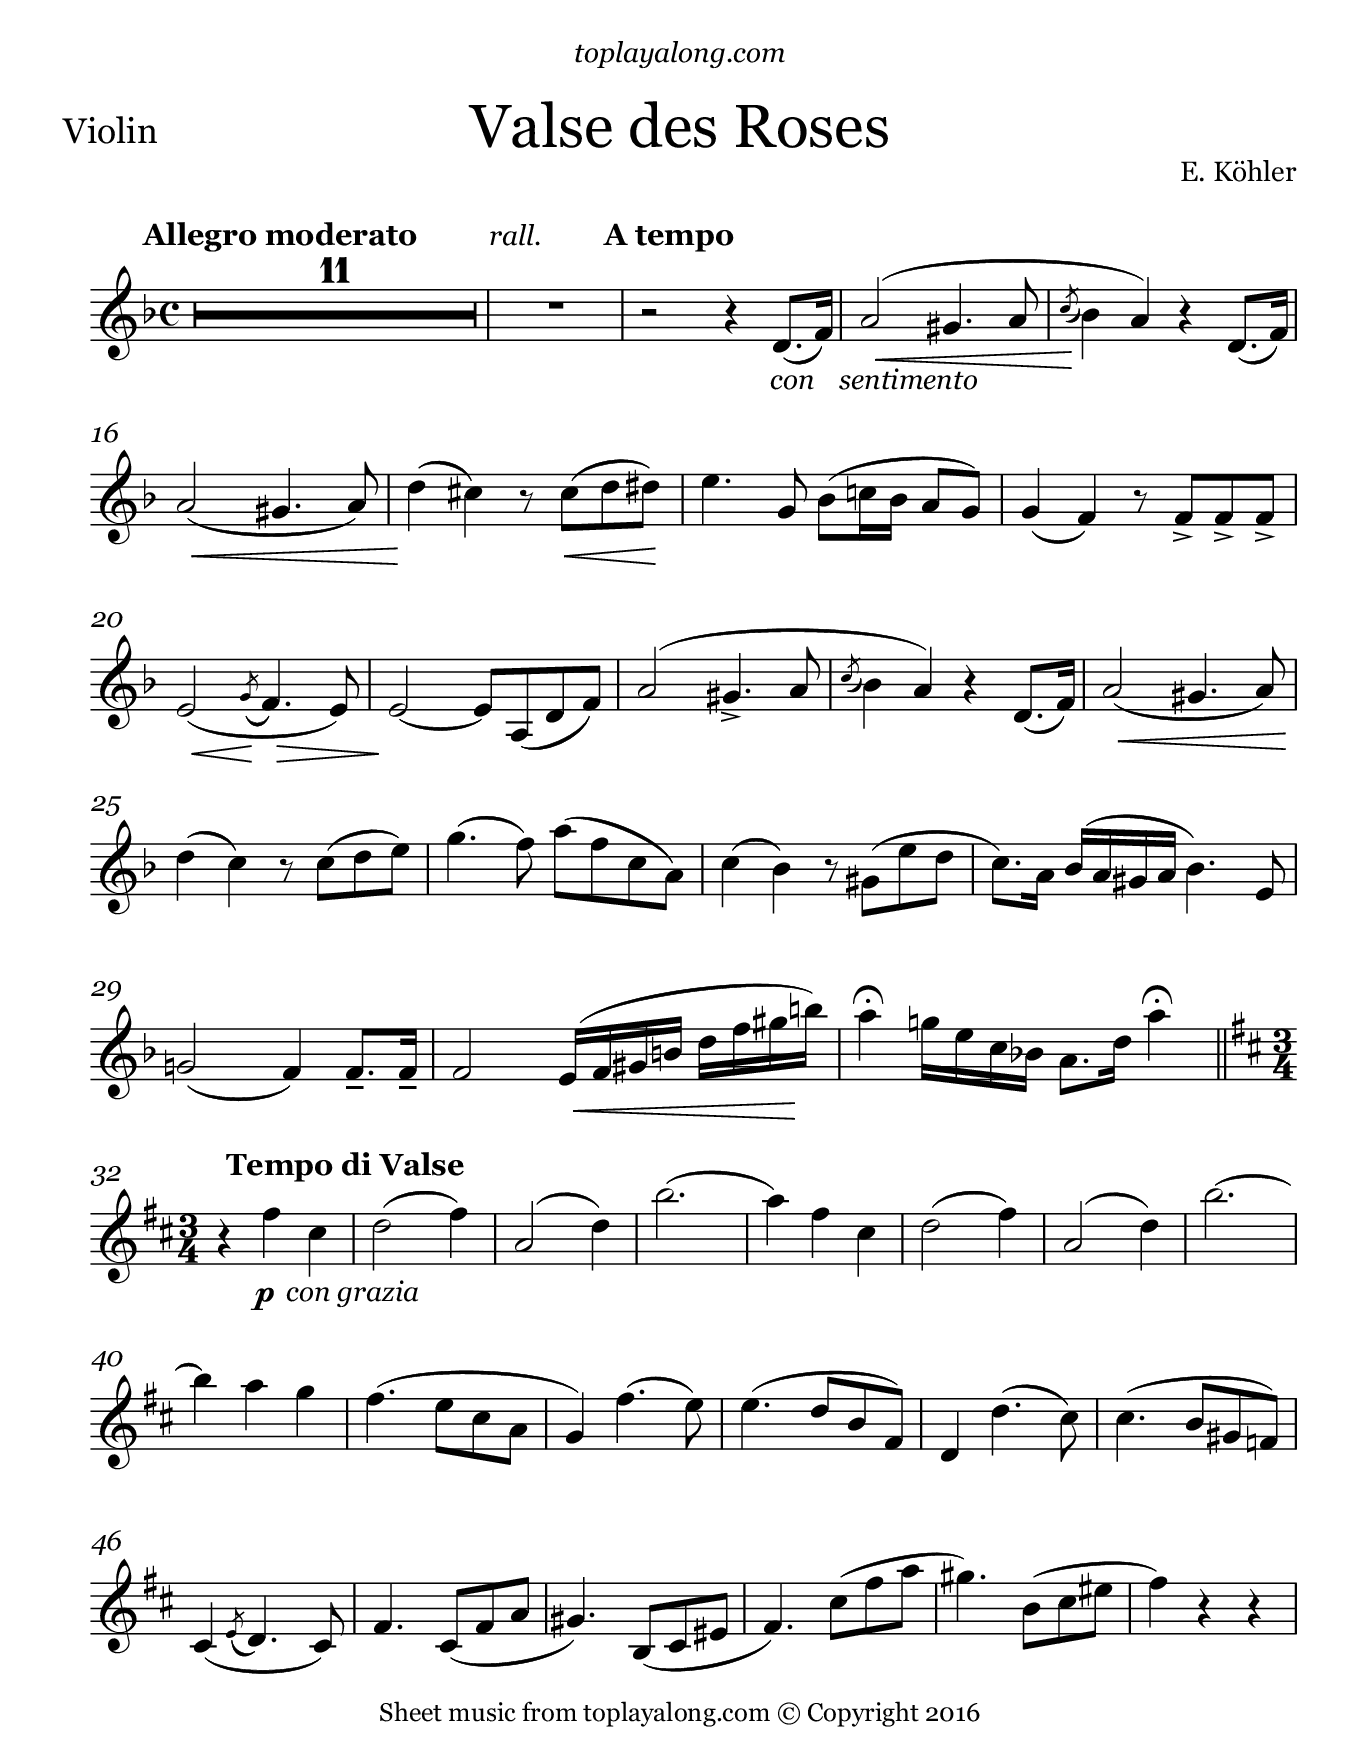 Valse des Roses by Kohler. Sheet music for Violin, page 1.